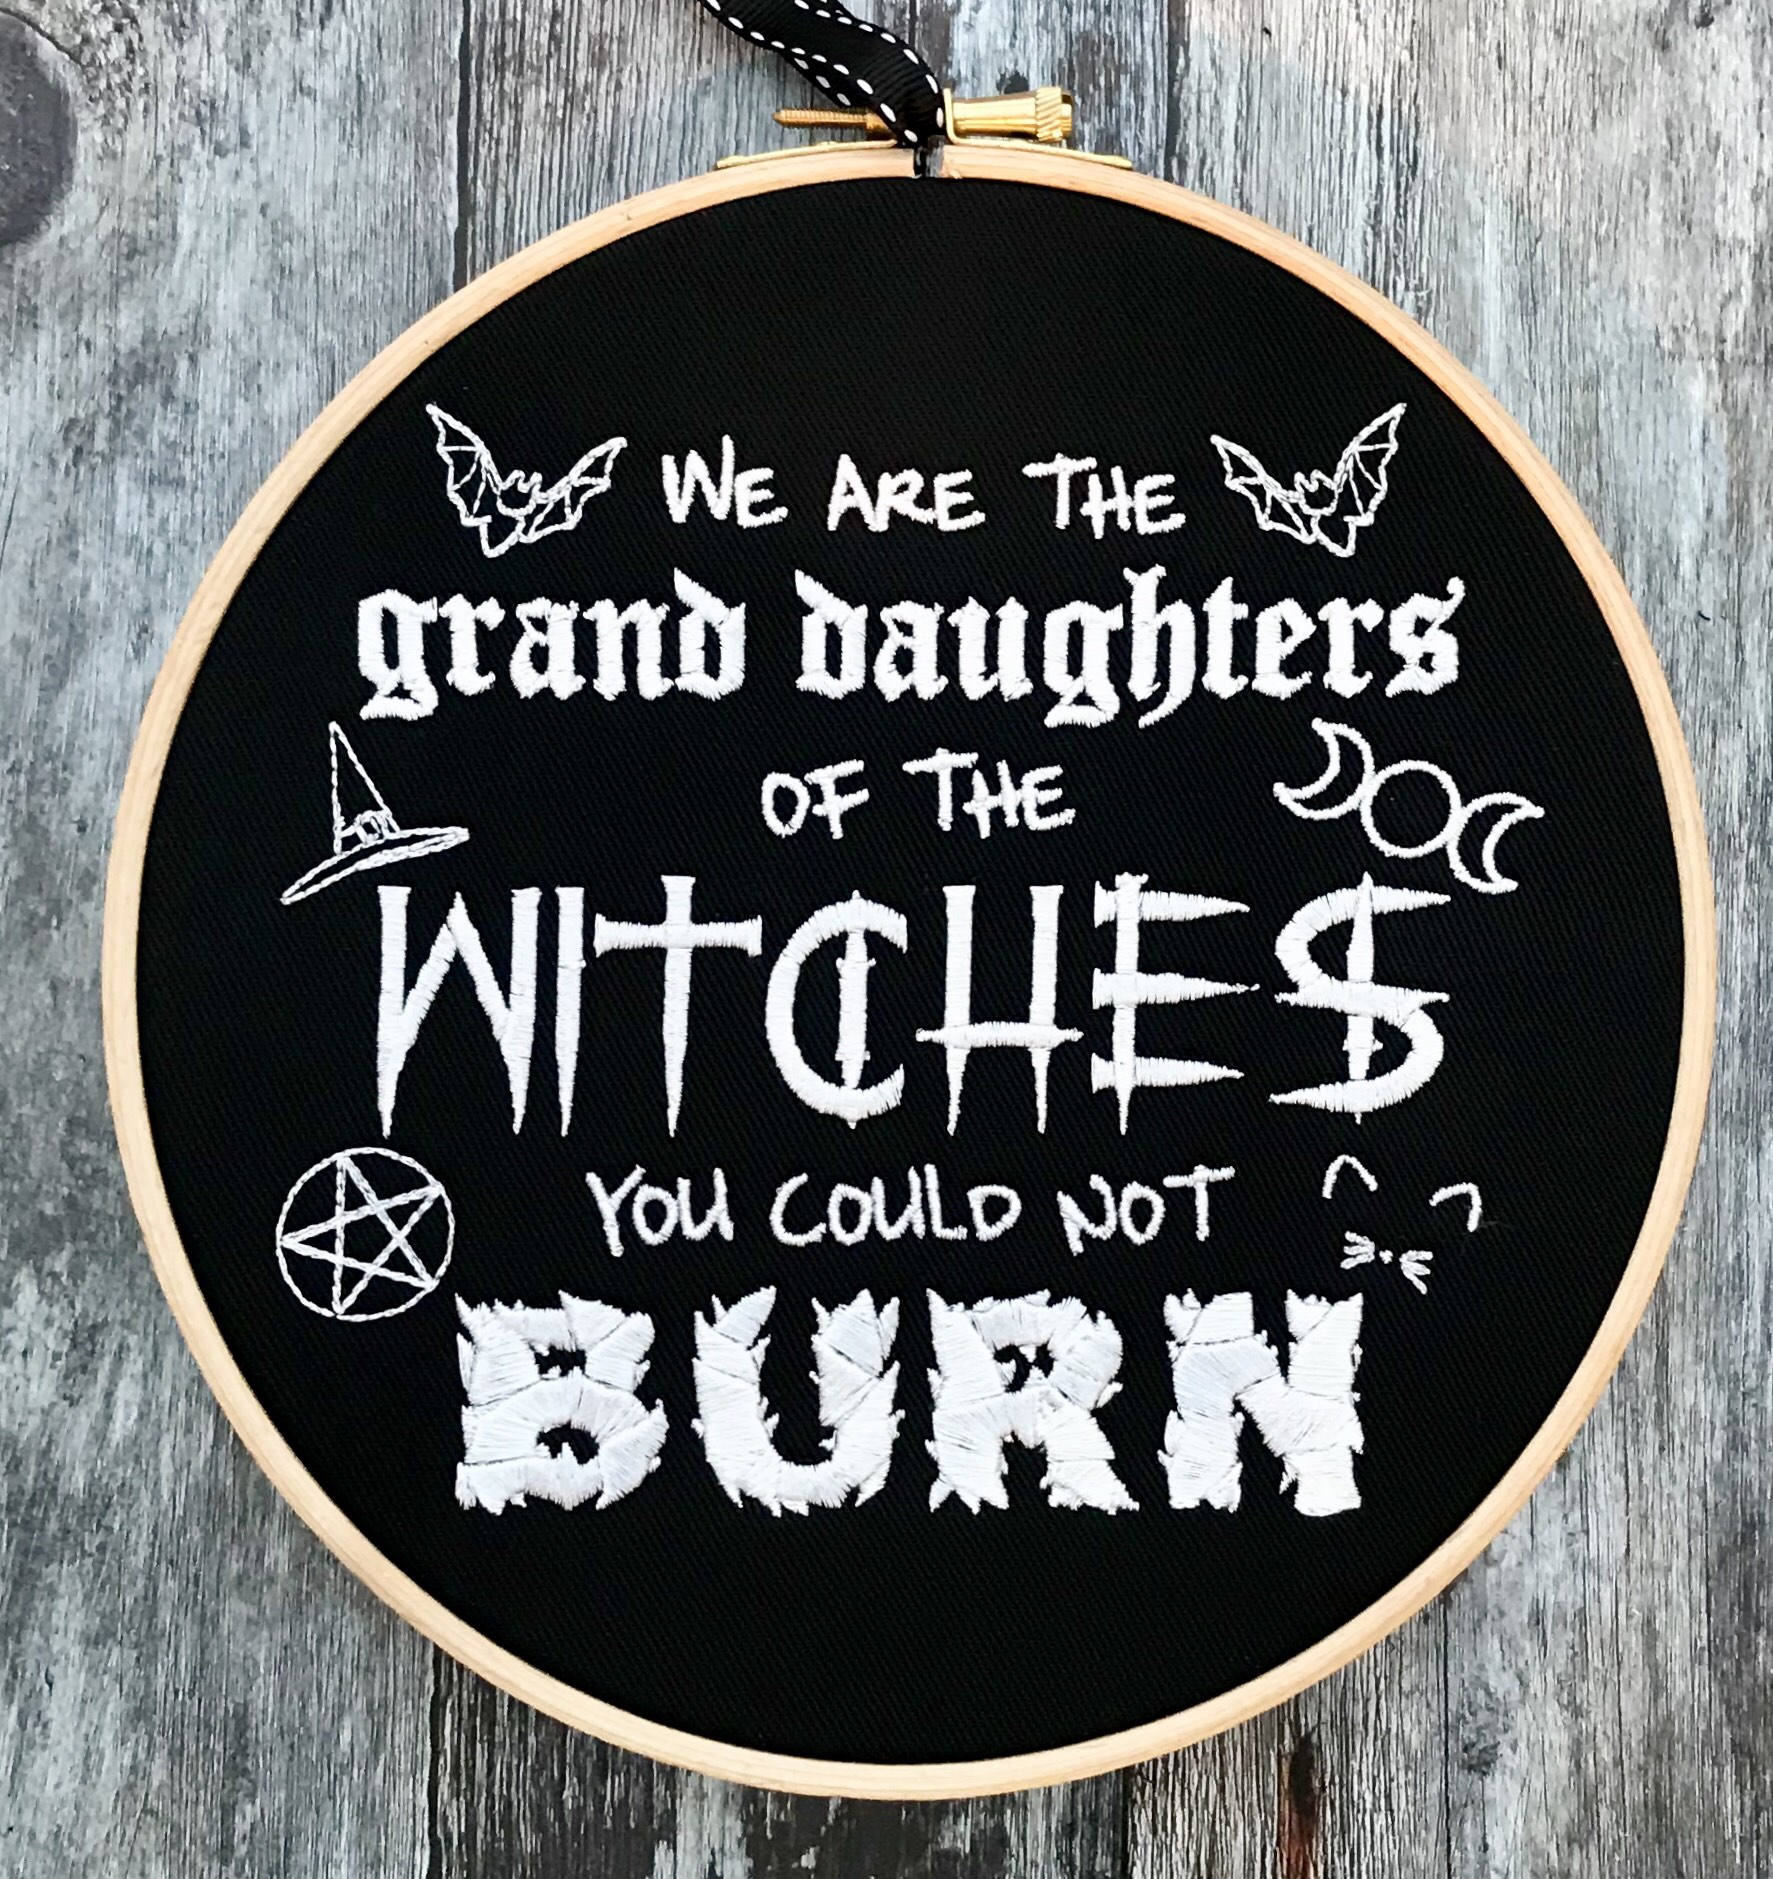 We are the granddaughters of witches you could not burn,  Embroidery hoop art